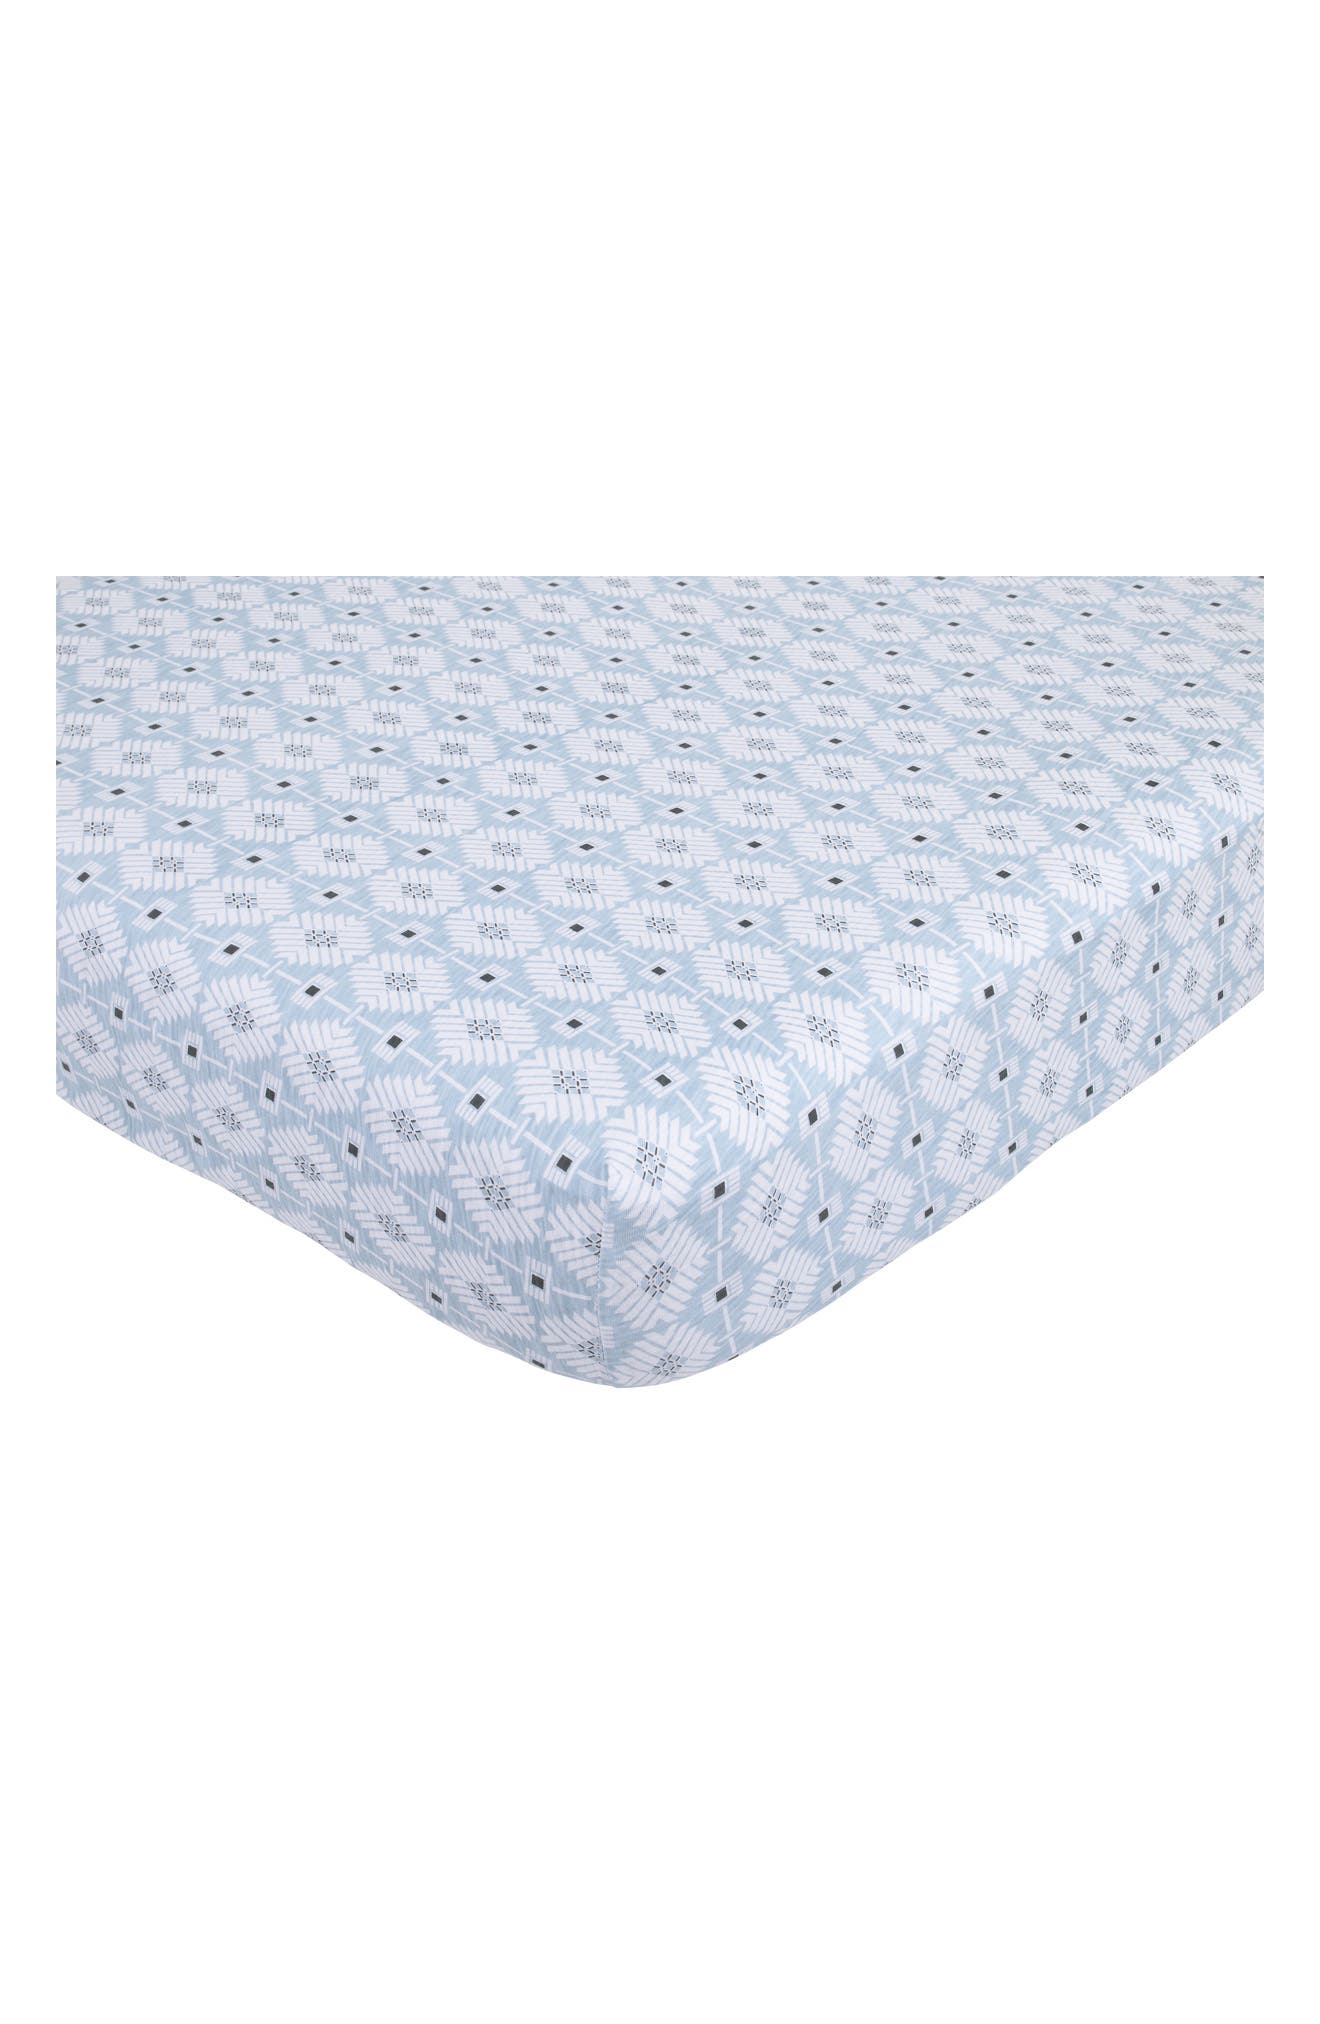 Alternate Image 1 Selected - Petunia Pickle Bottom Southwest Skies Fitted Sheet